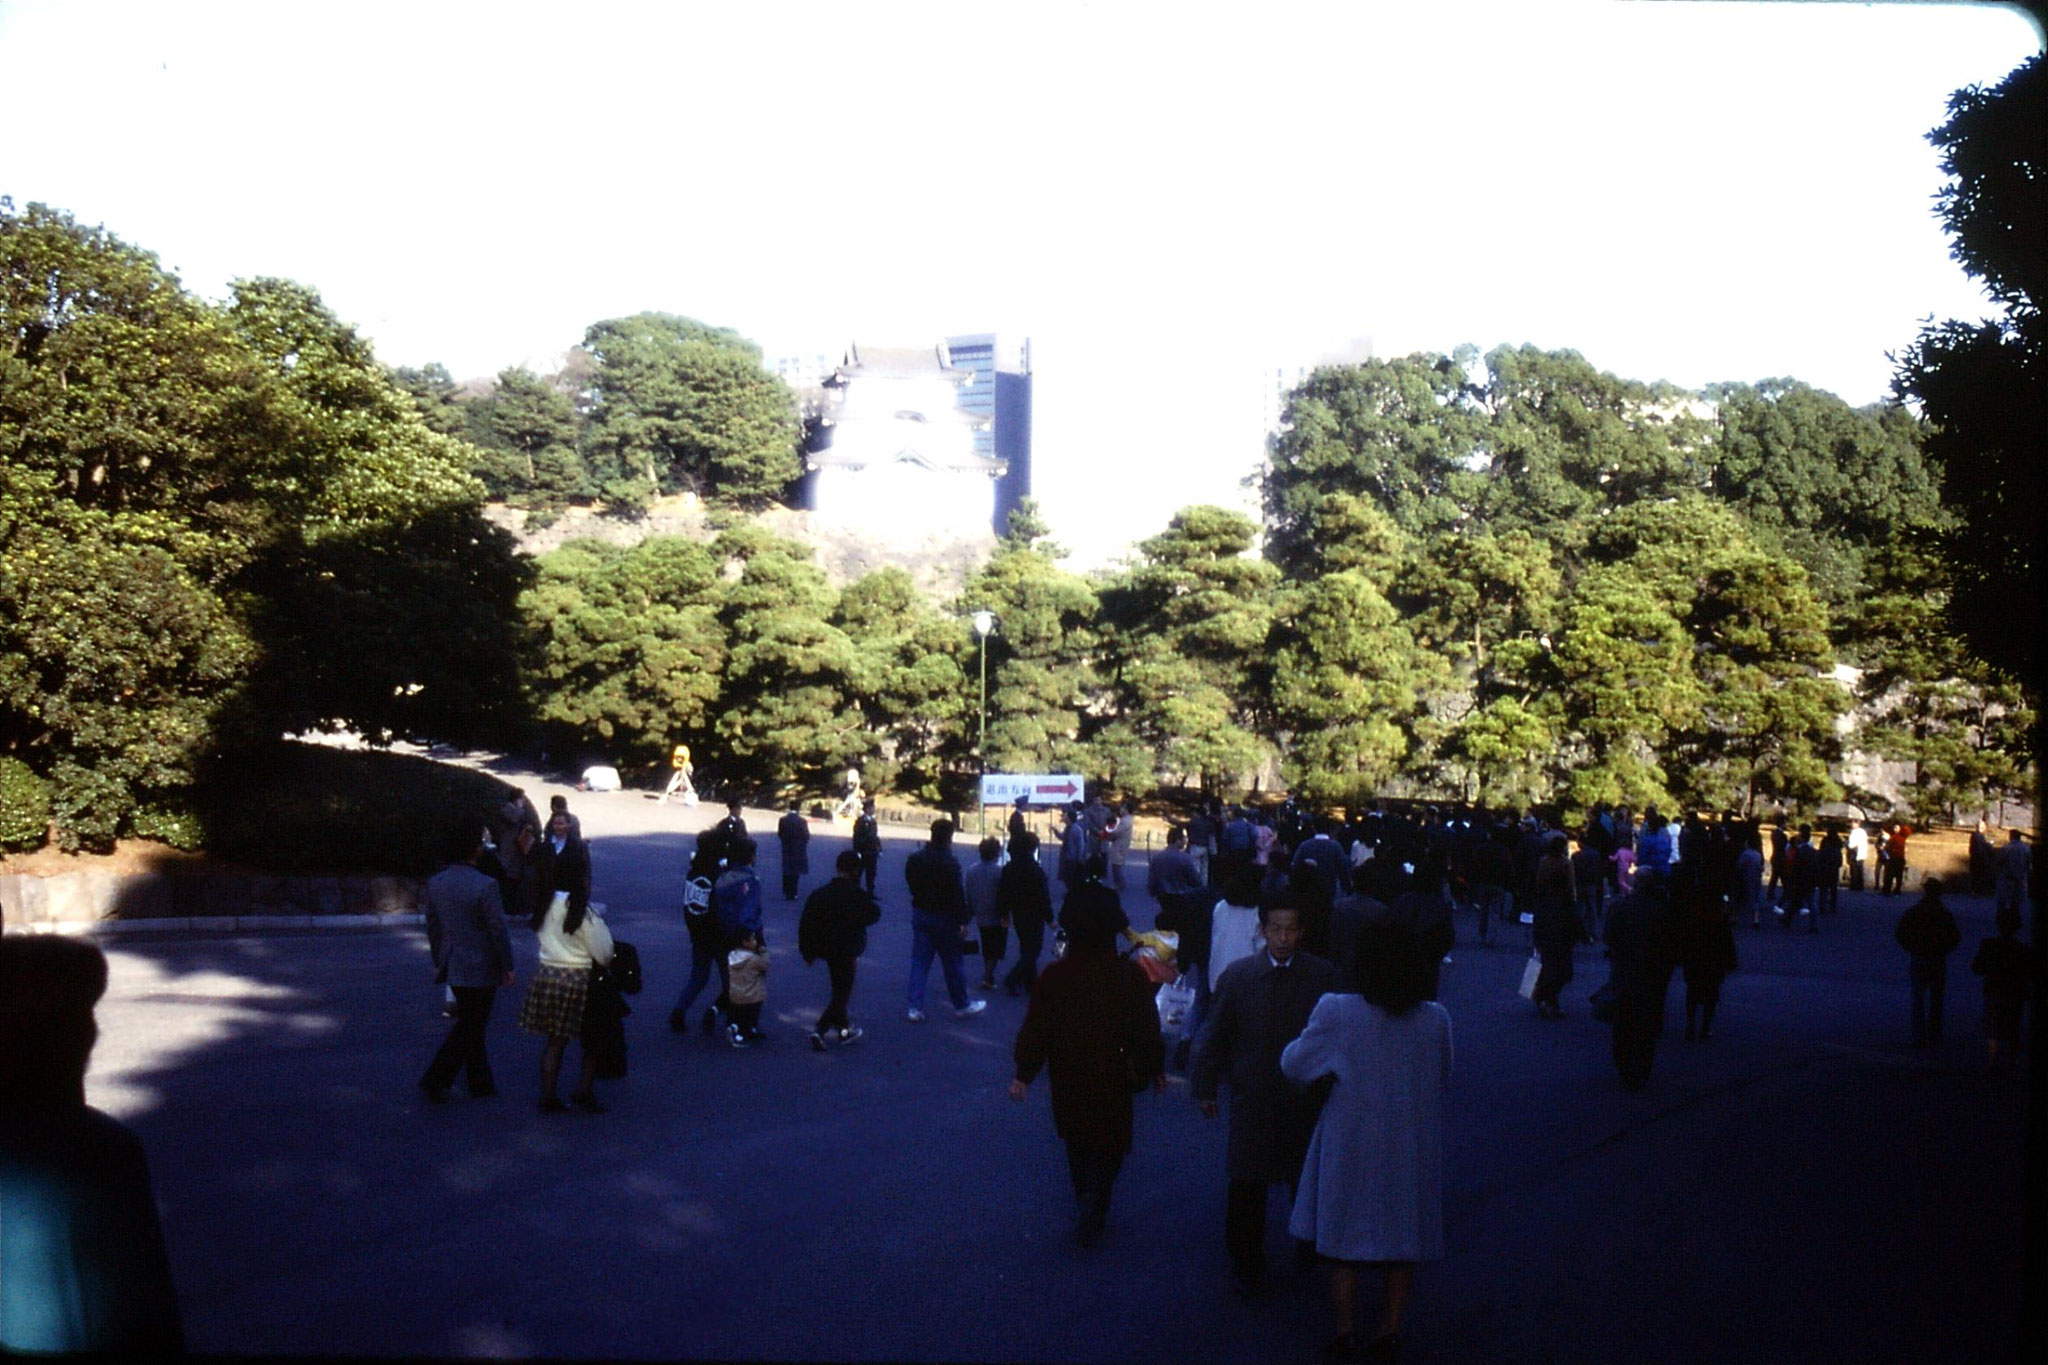 2/1/1989: 29: Imperial Palace